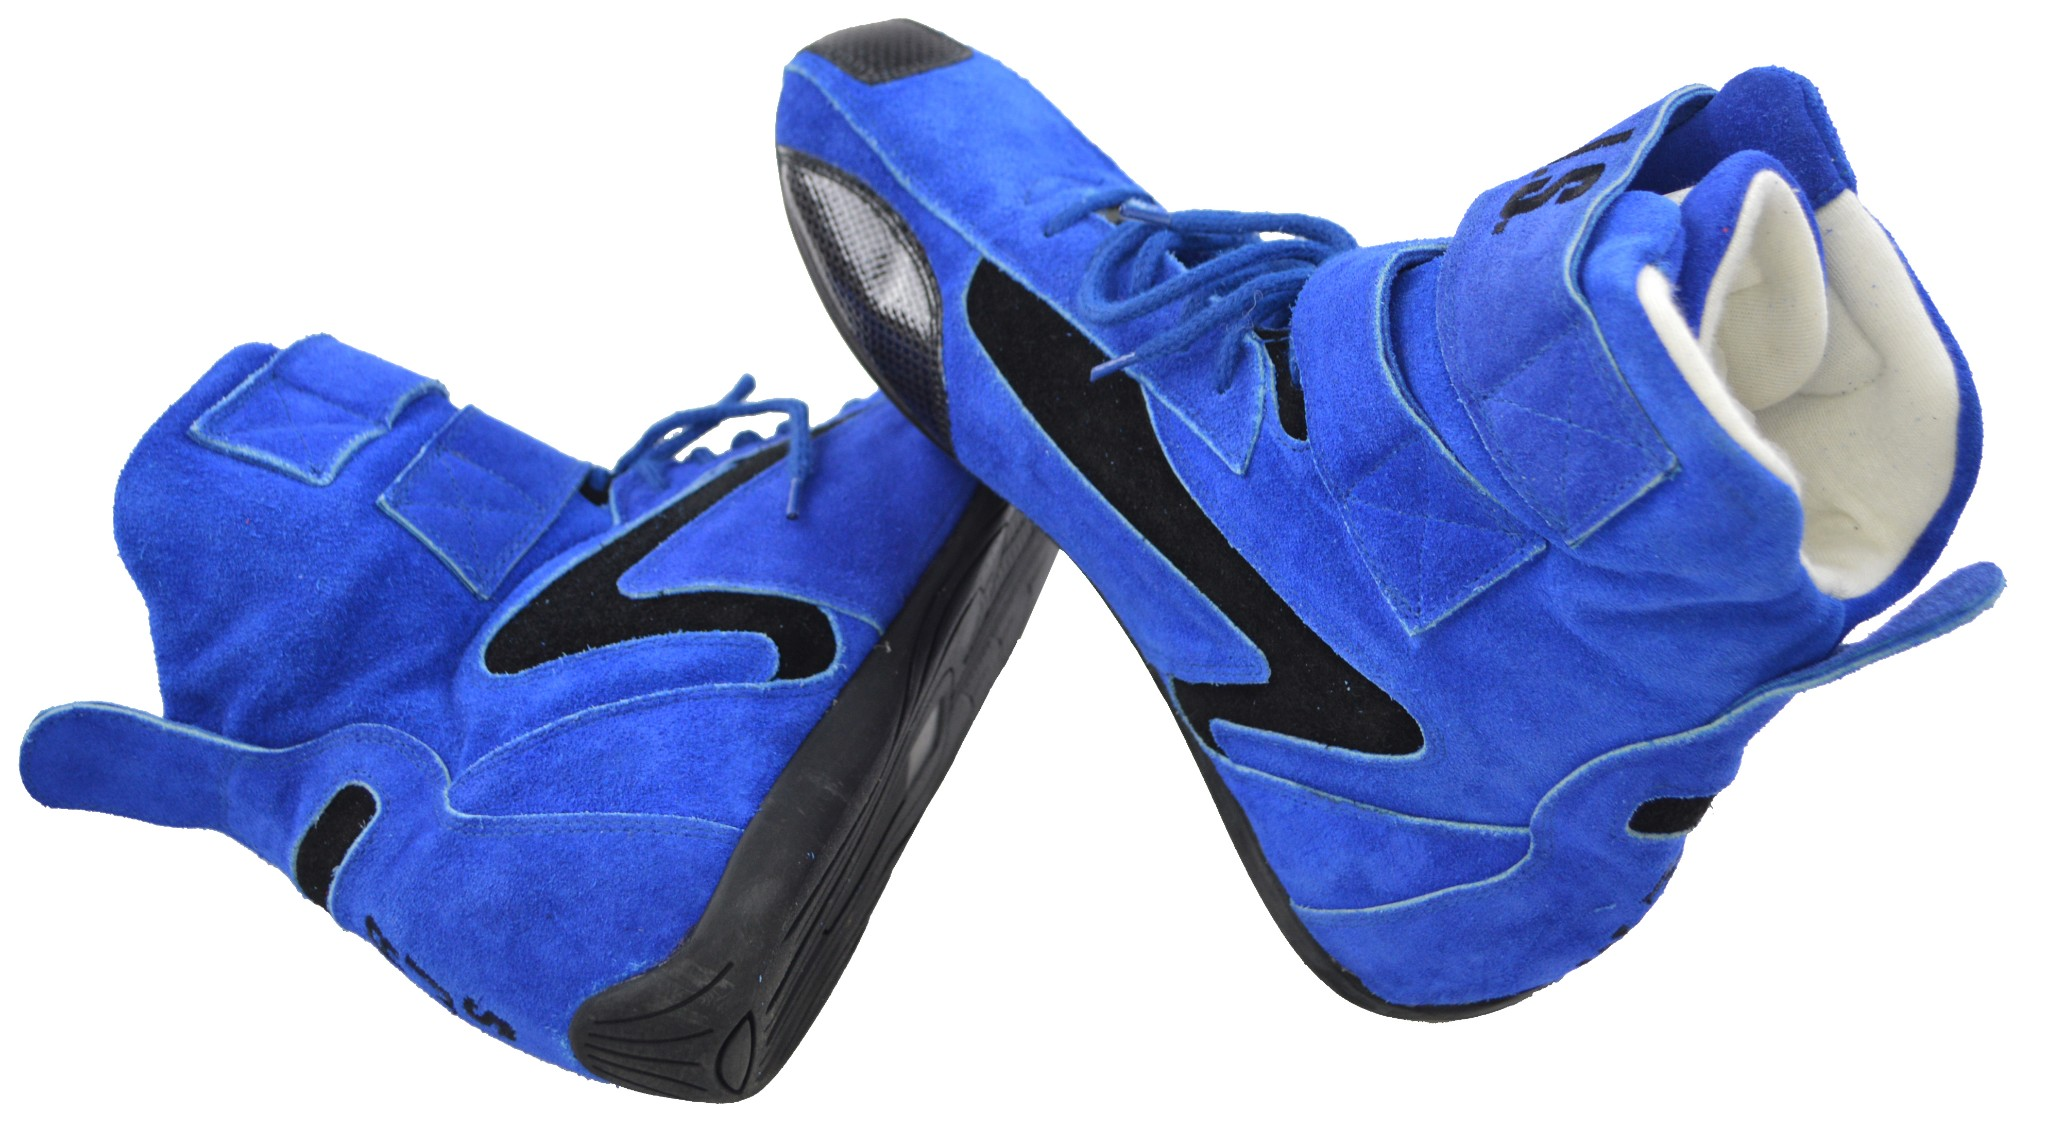 RACERDIRECT.NET RJS Racing Safety Equipment Blue HI TOP Shoes Boots SFI 3.3//5 US Mens Size 15